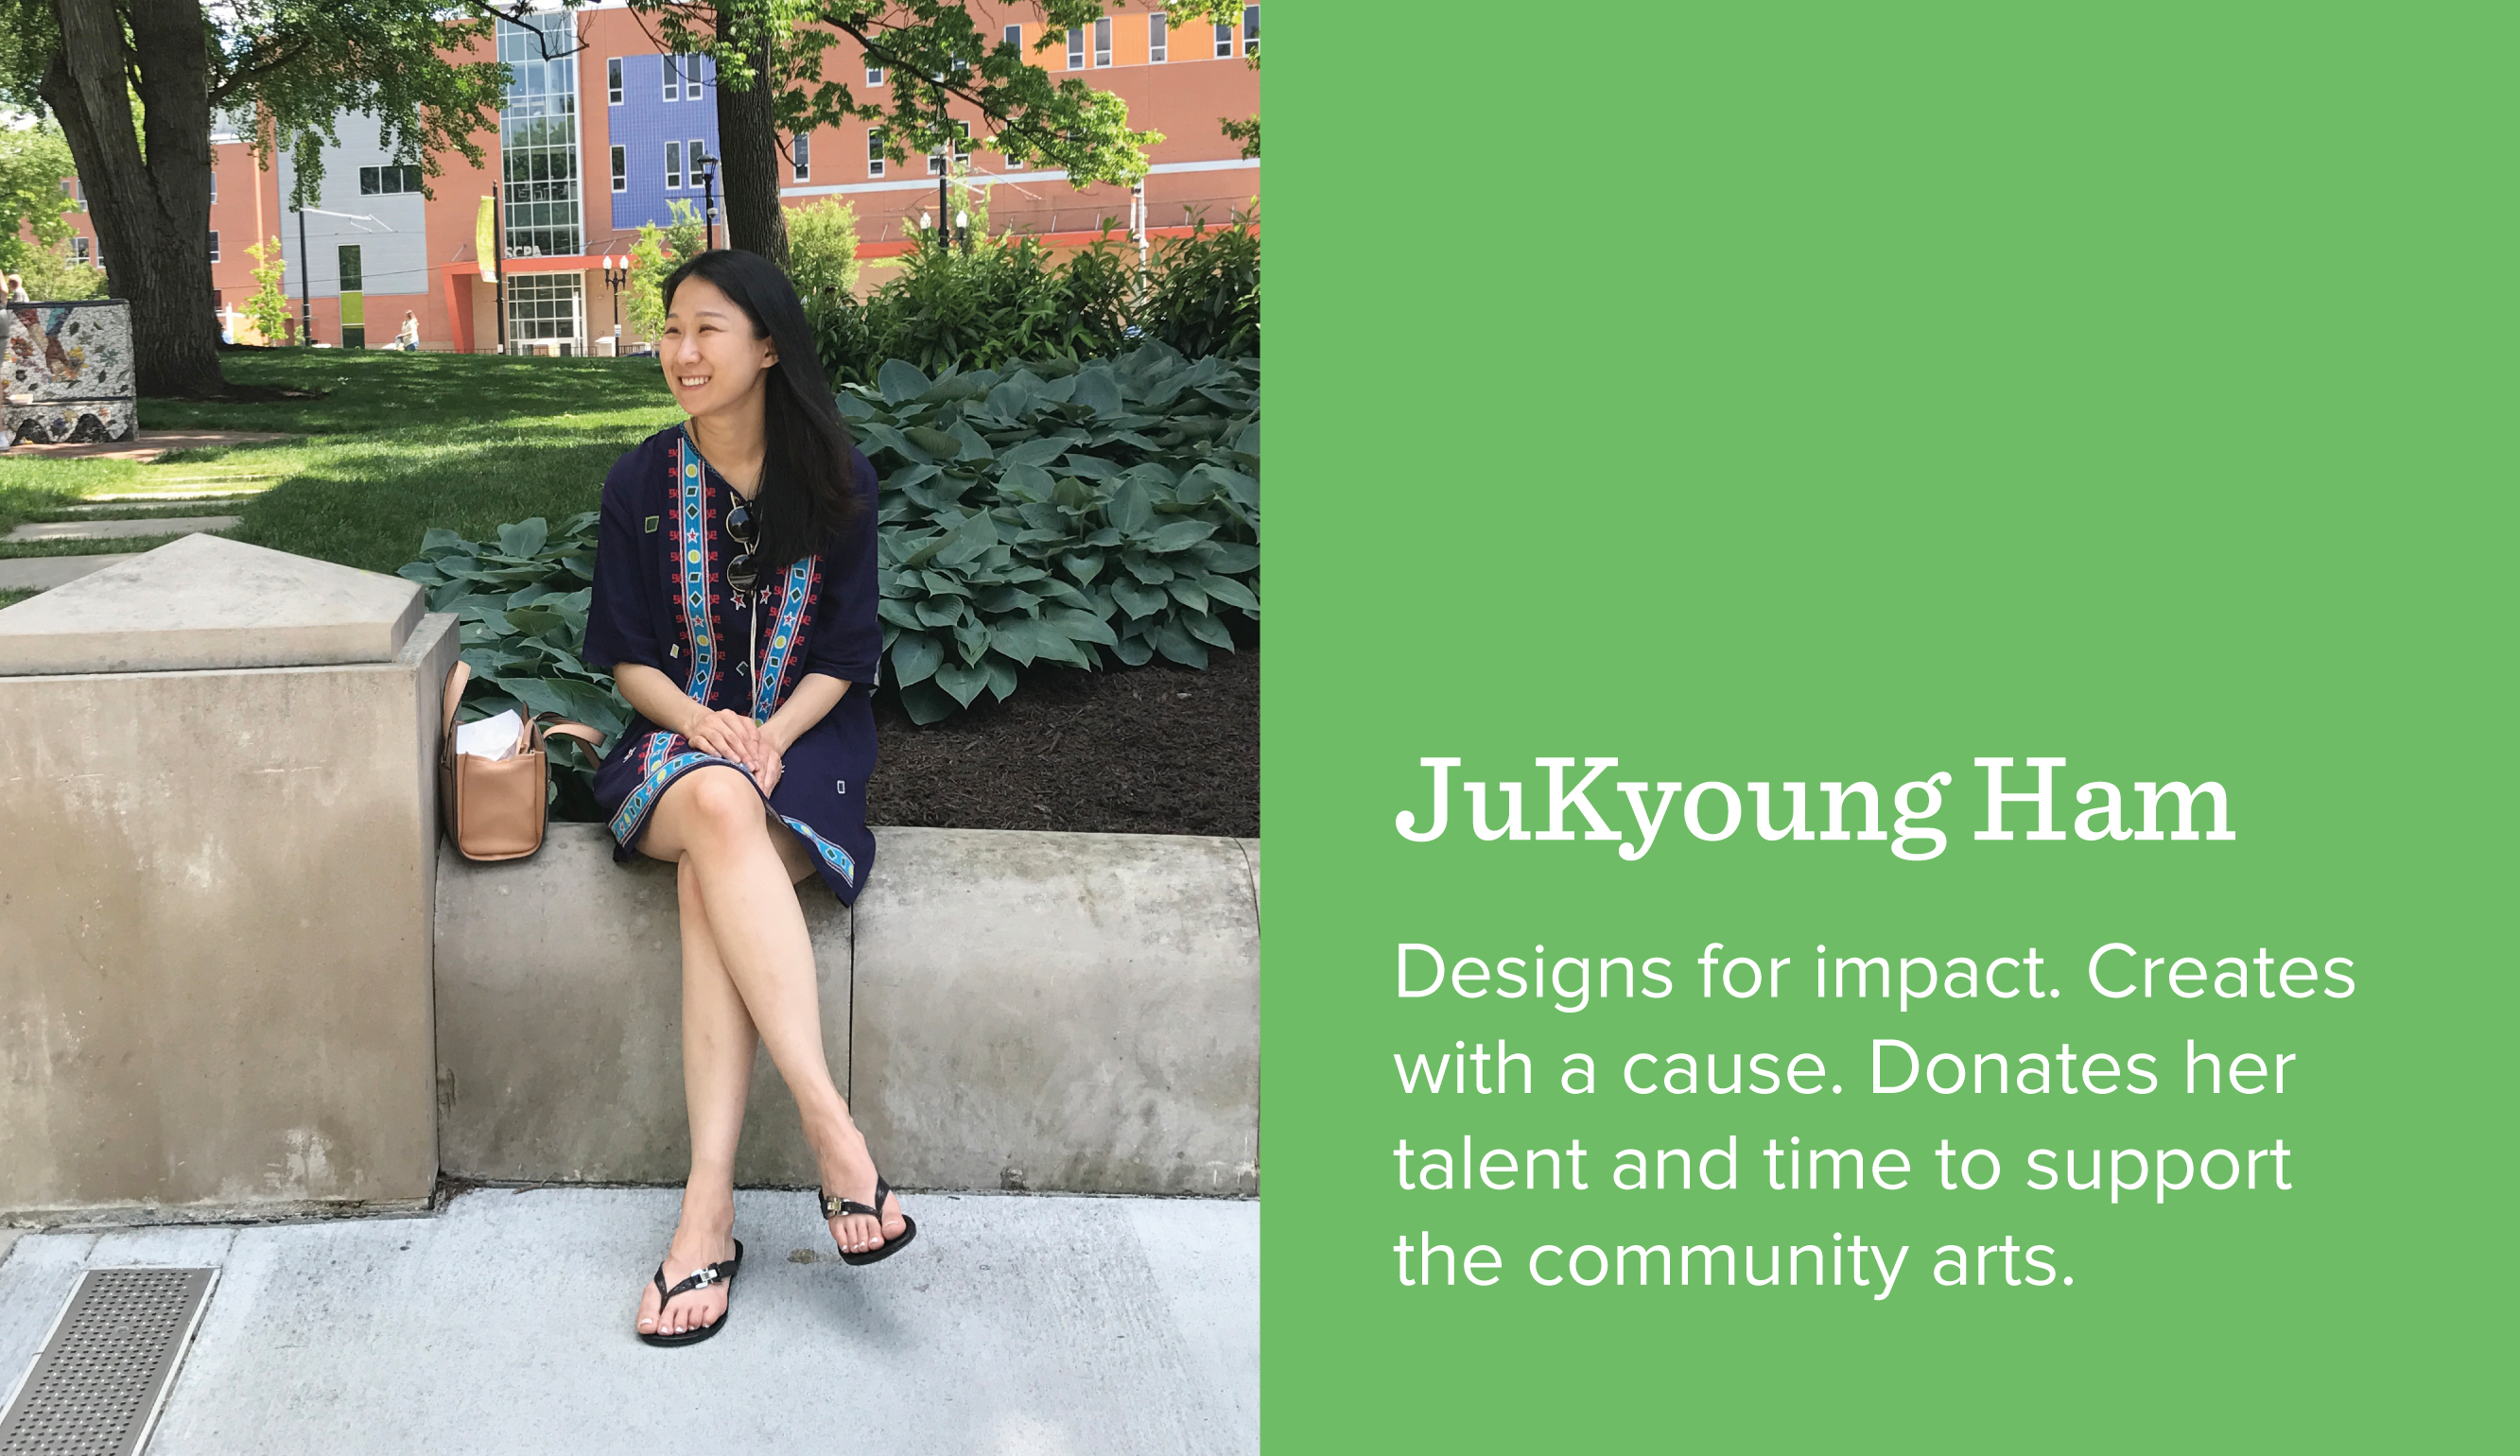 JuKyoung Ham. Designs for impact. Creates with a cause. Donates her talent and time to support the community arts.